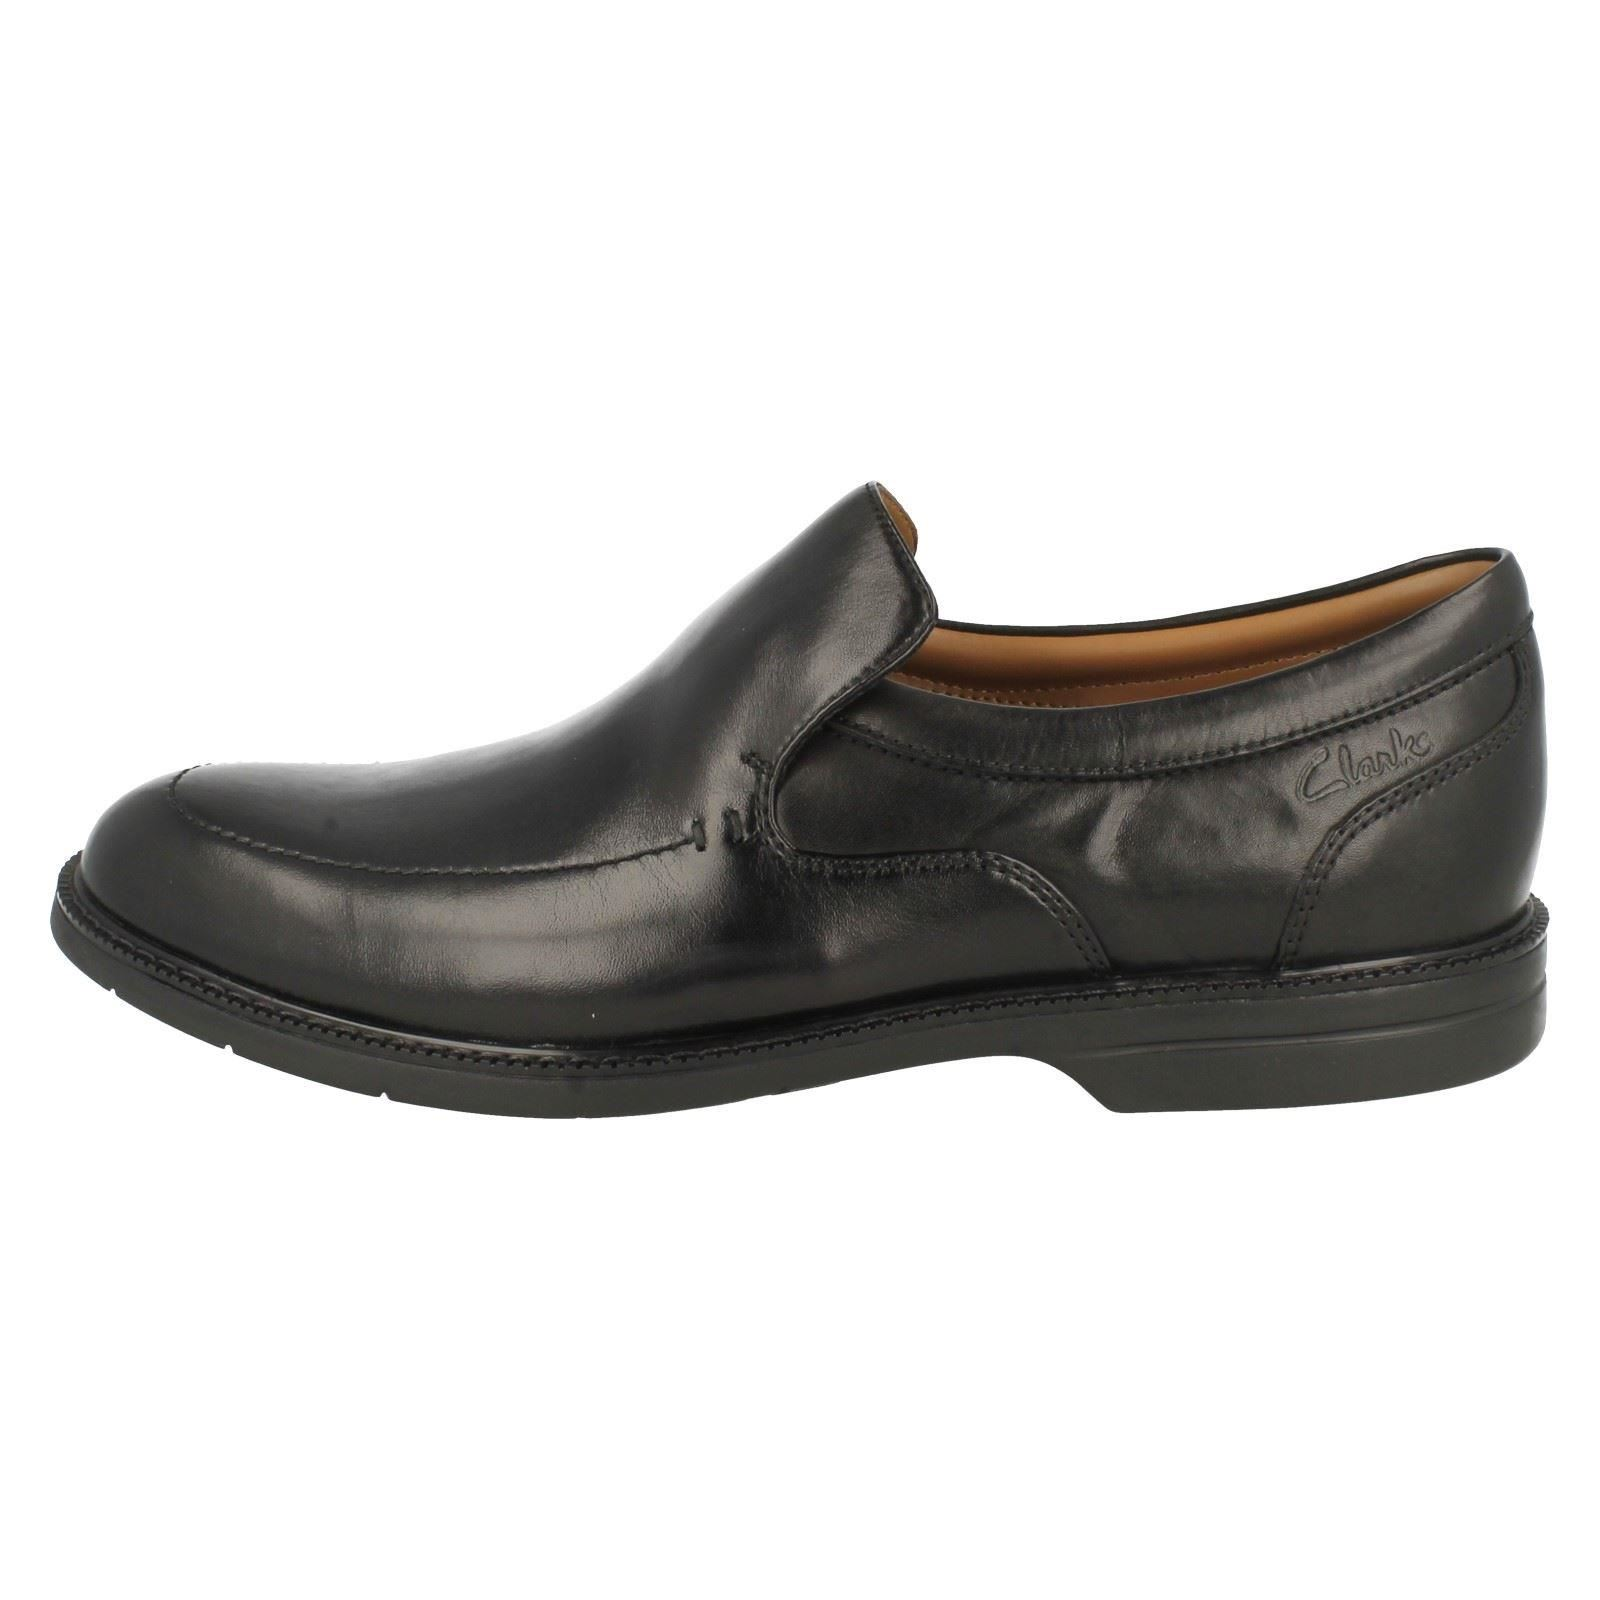 Homme Clarks Bilton Step Formal Slip On On Slip Chaussures b5c663